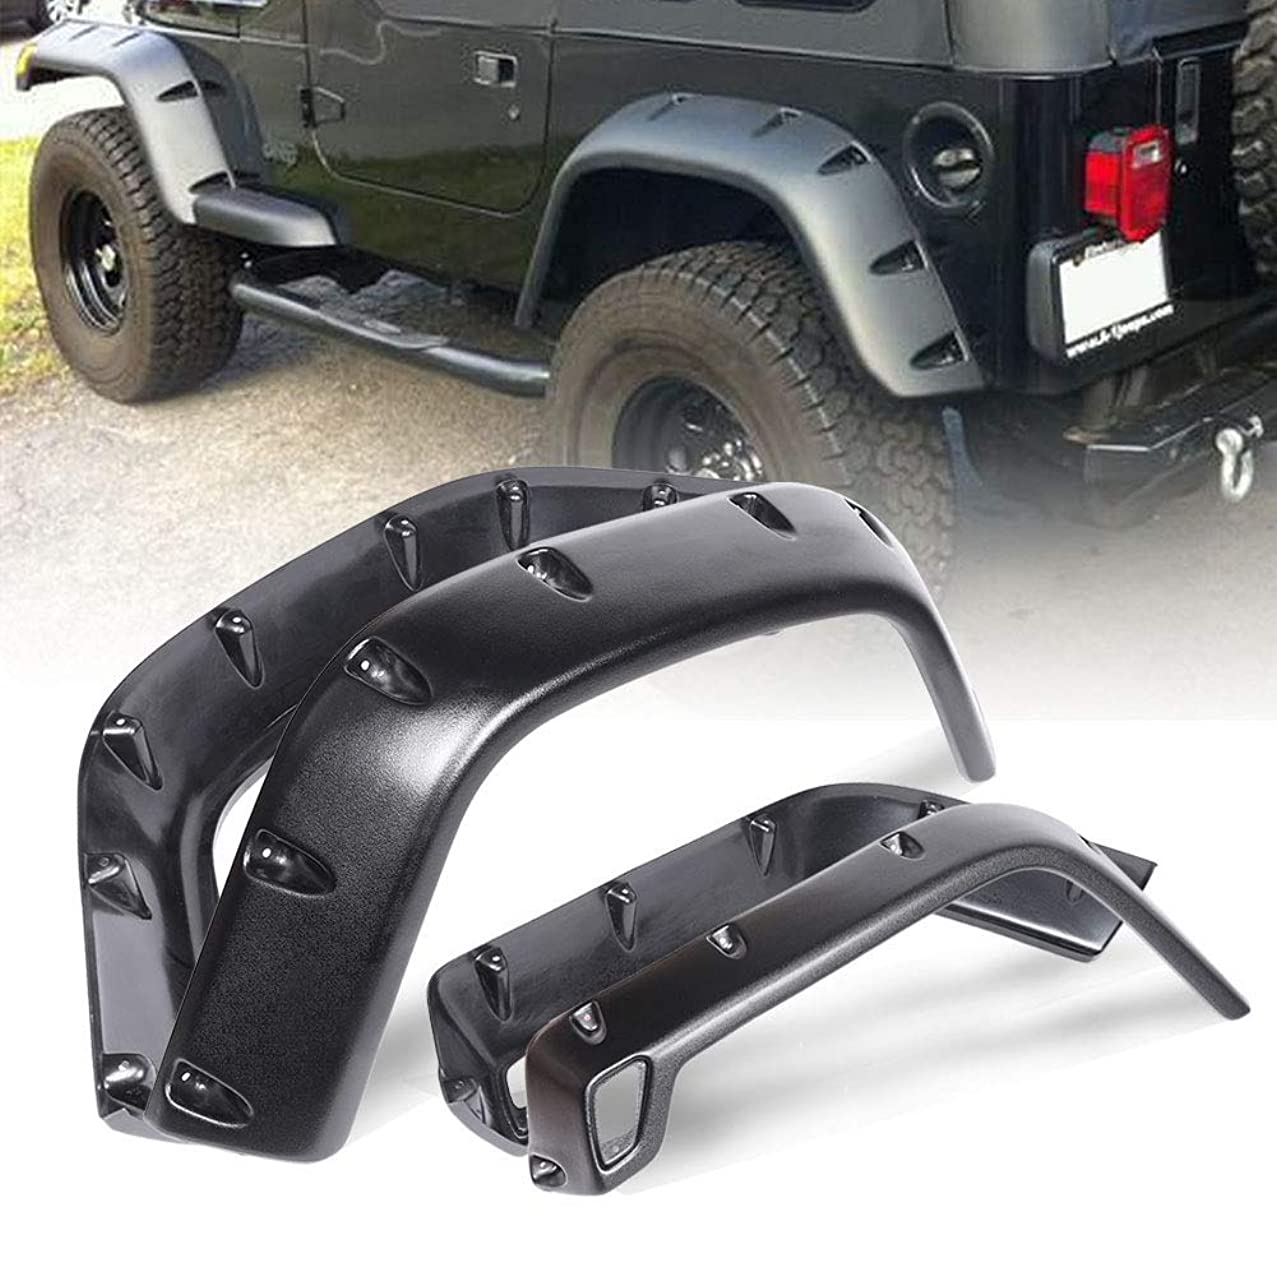 Newsmarts Textured Paintable ABS Smooth Fender Flares for 1997-2006 Jeep Wrangler TJ, Pack of 4